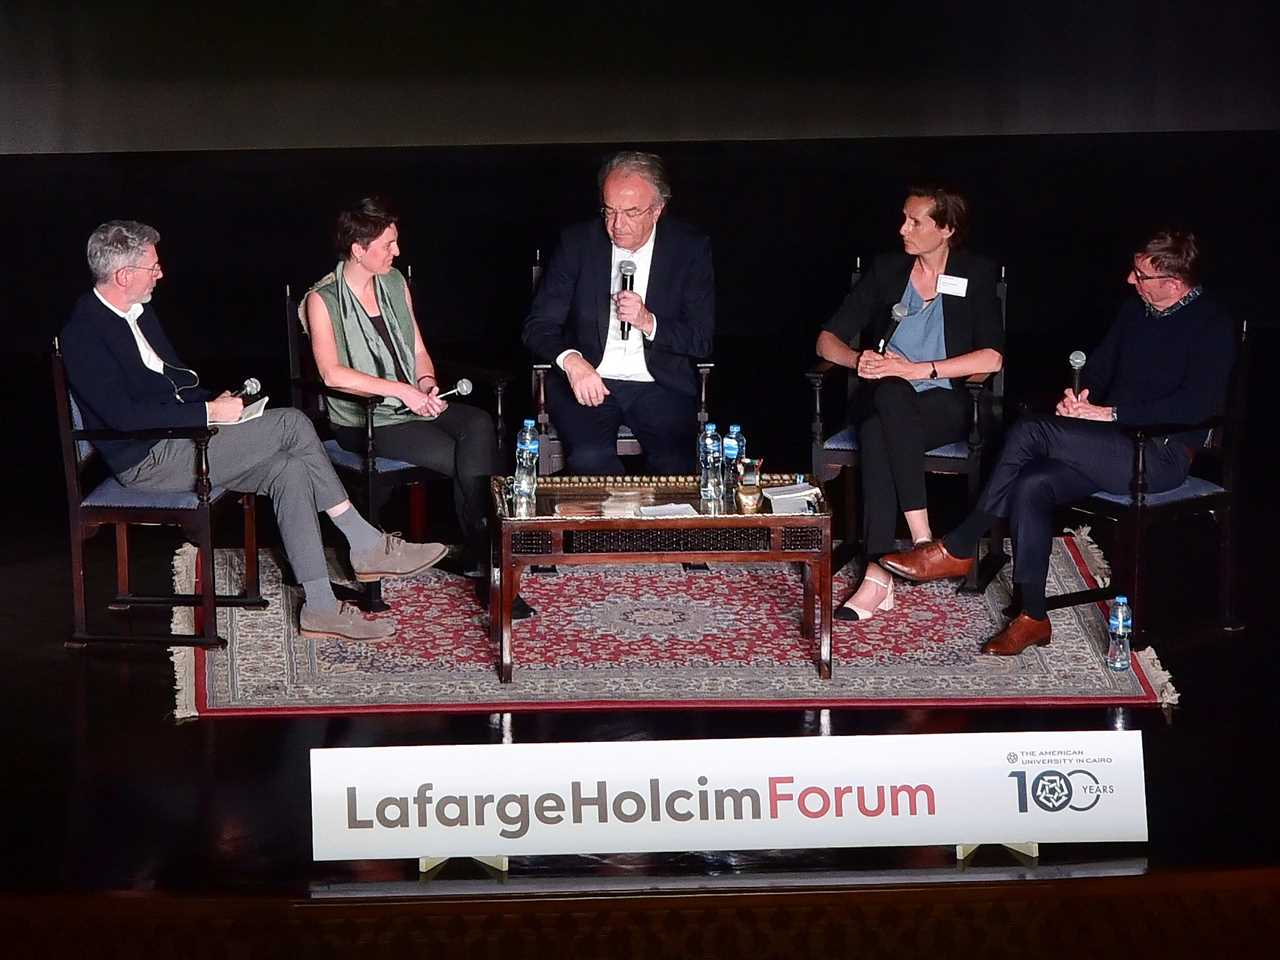 6th LafargeHolcim Forum for Sustainable Construction – Cairo, April 2019.